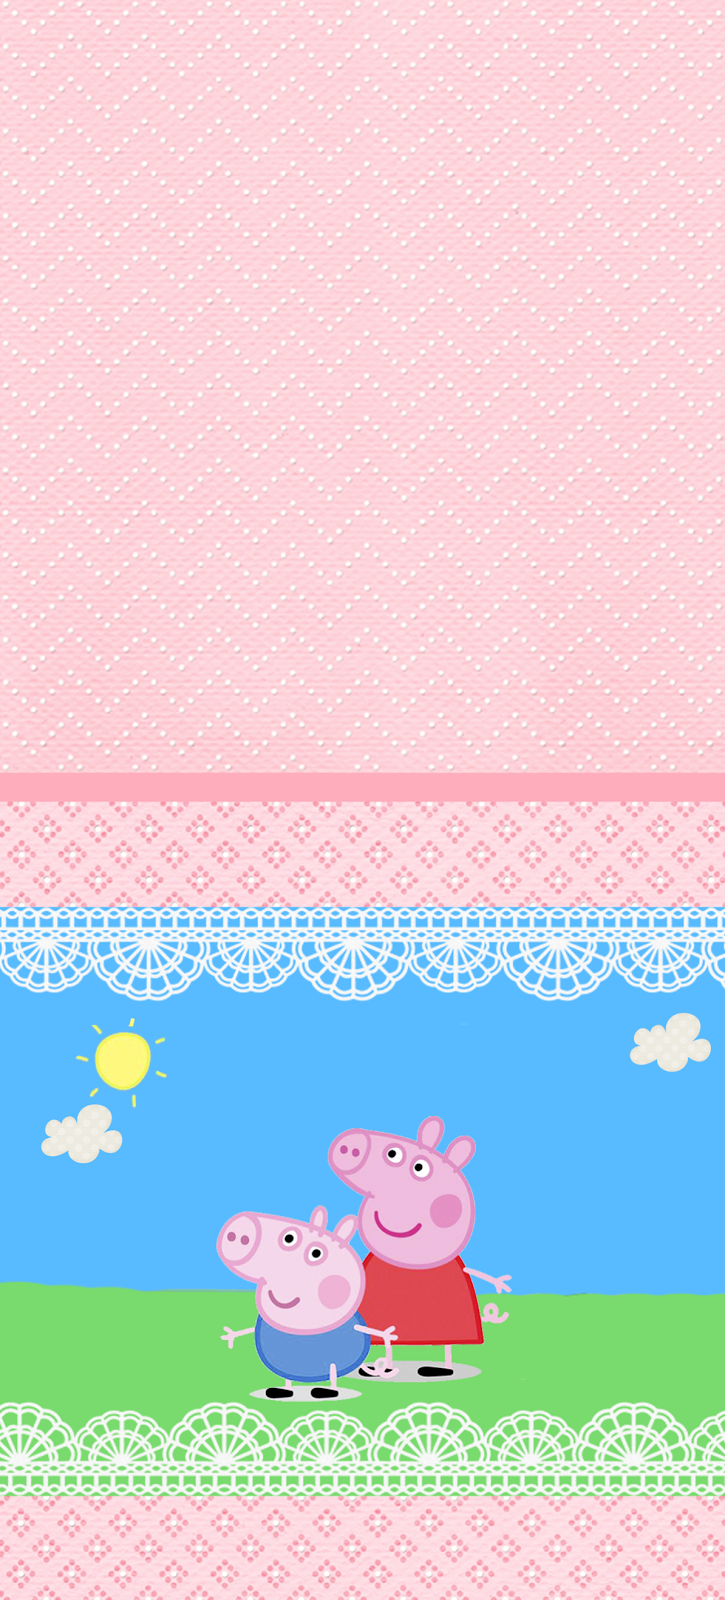 Pe peppa pig coloring pictures to print - Peppa Pig